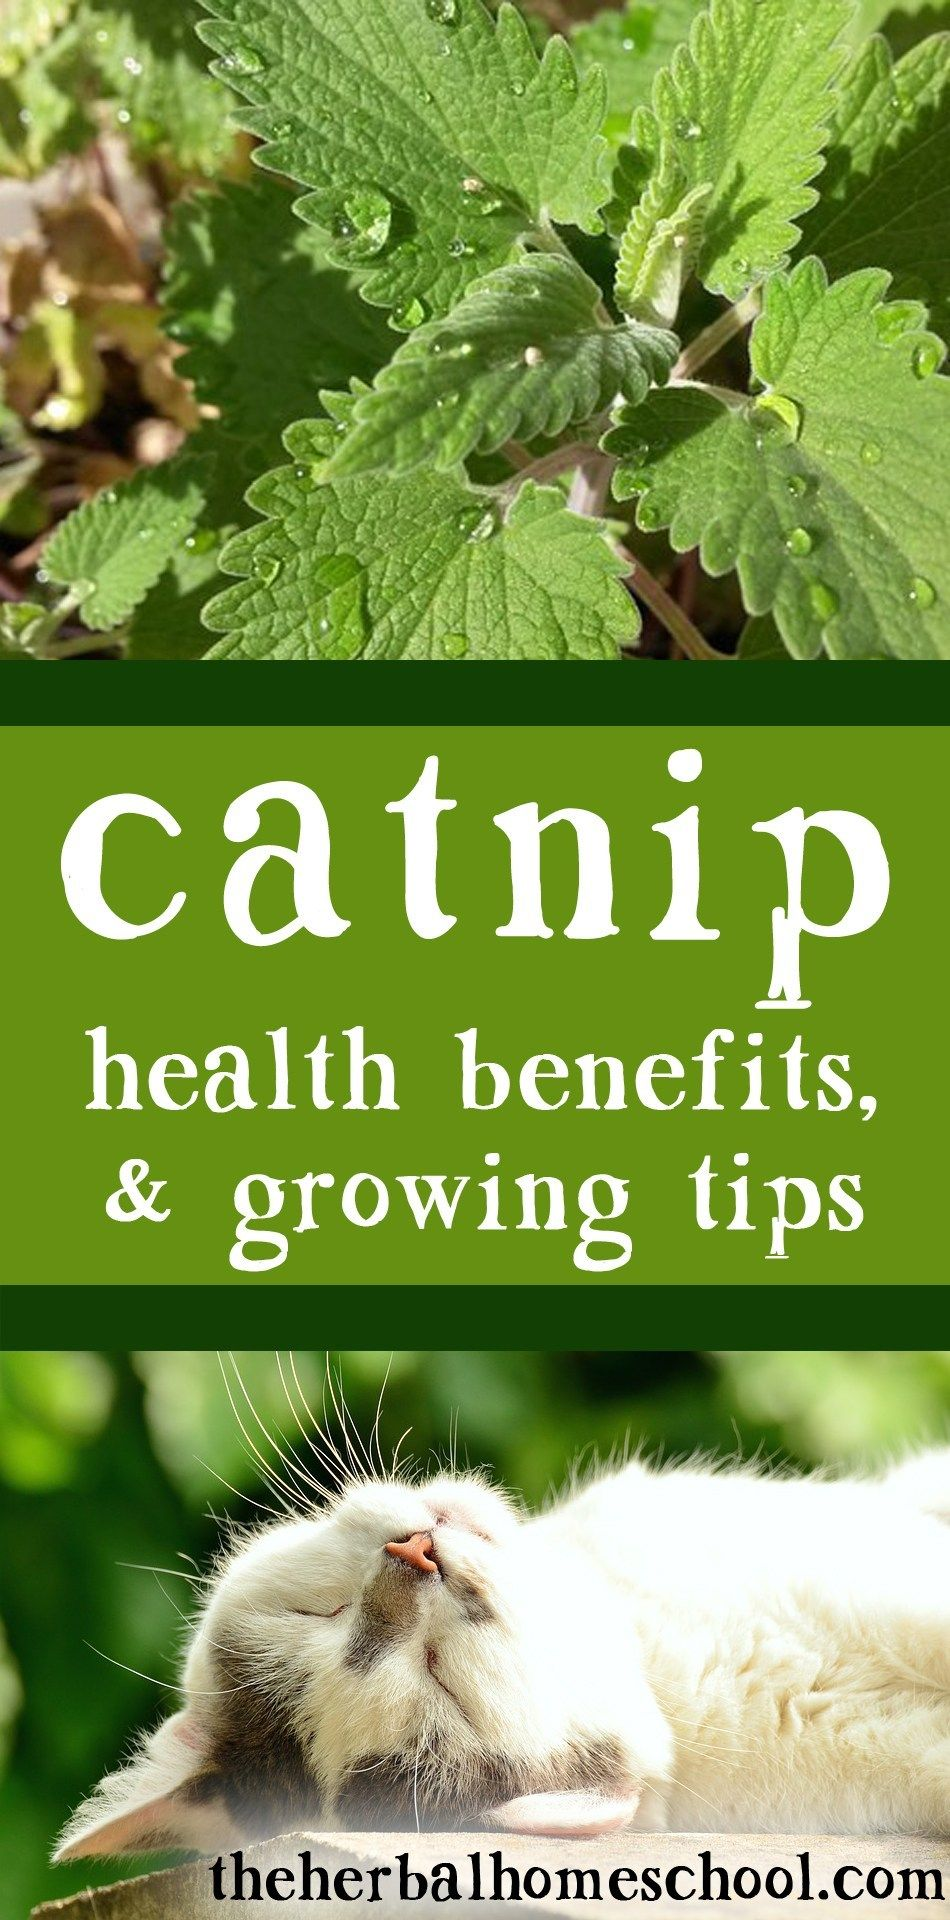 Catnip; Health Benefits & Growing Tips (With images